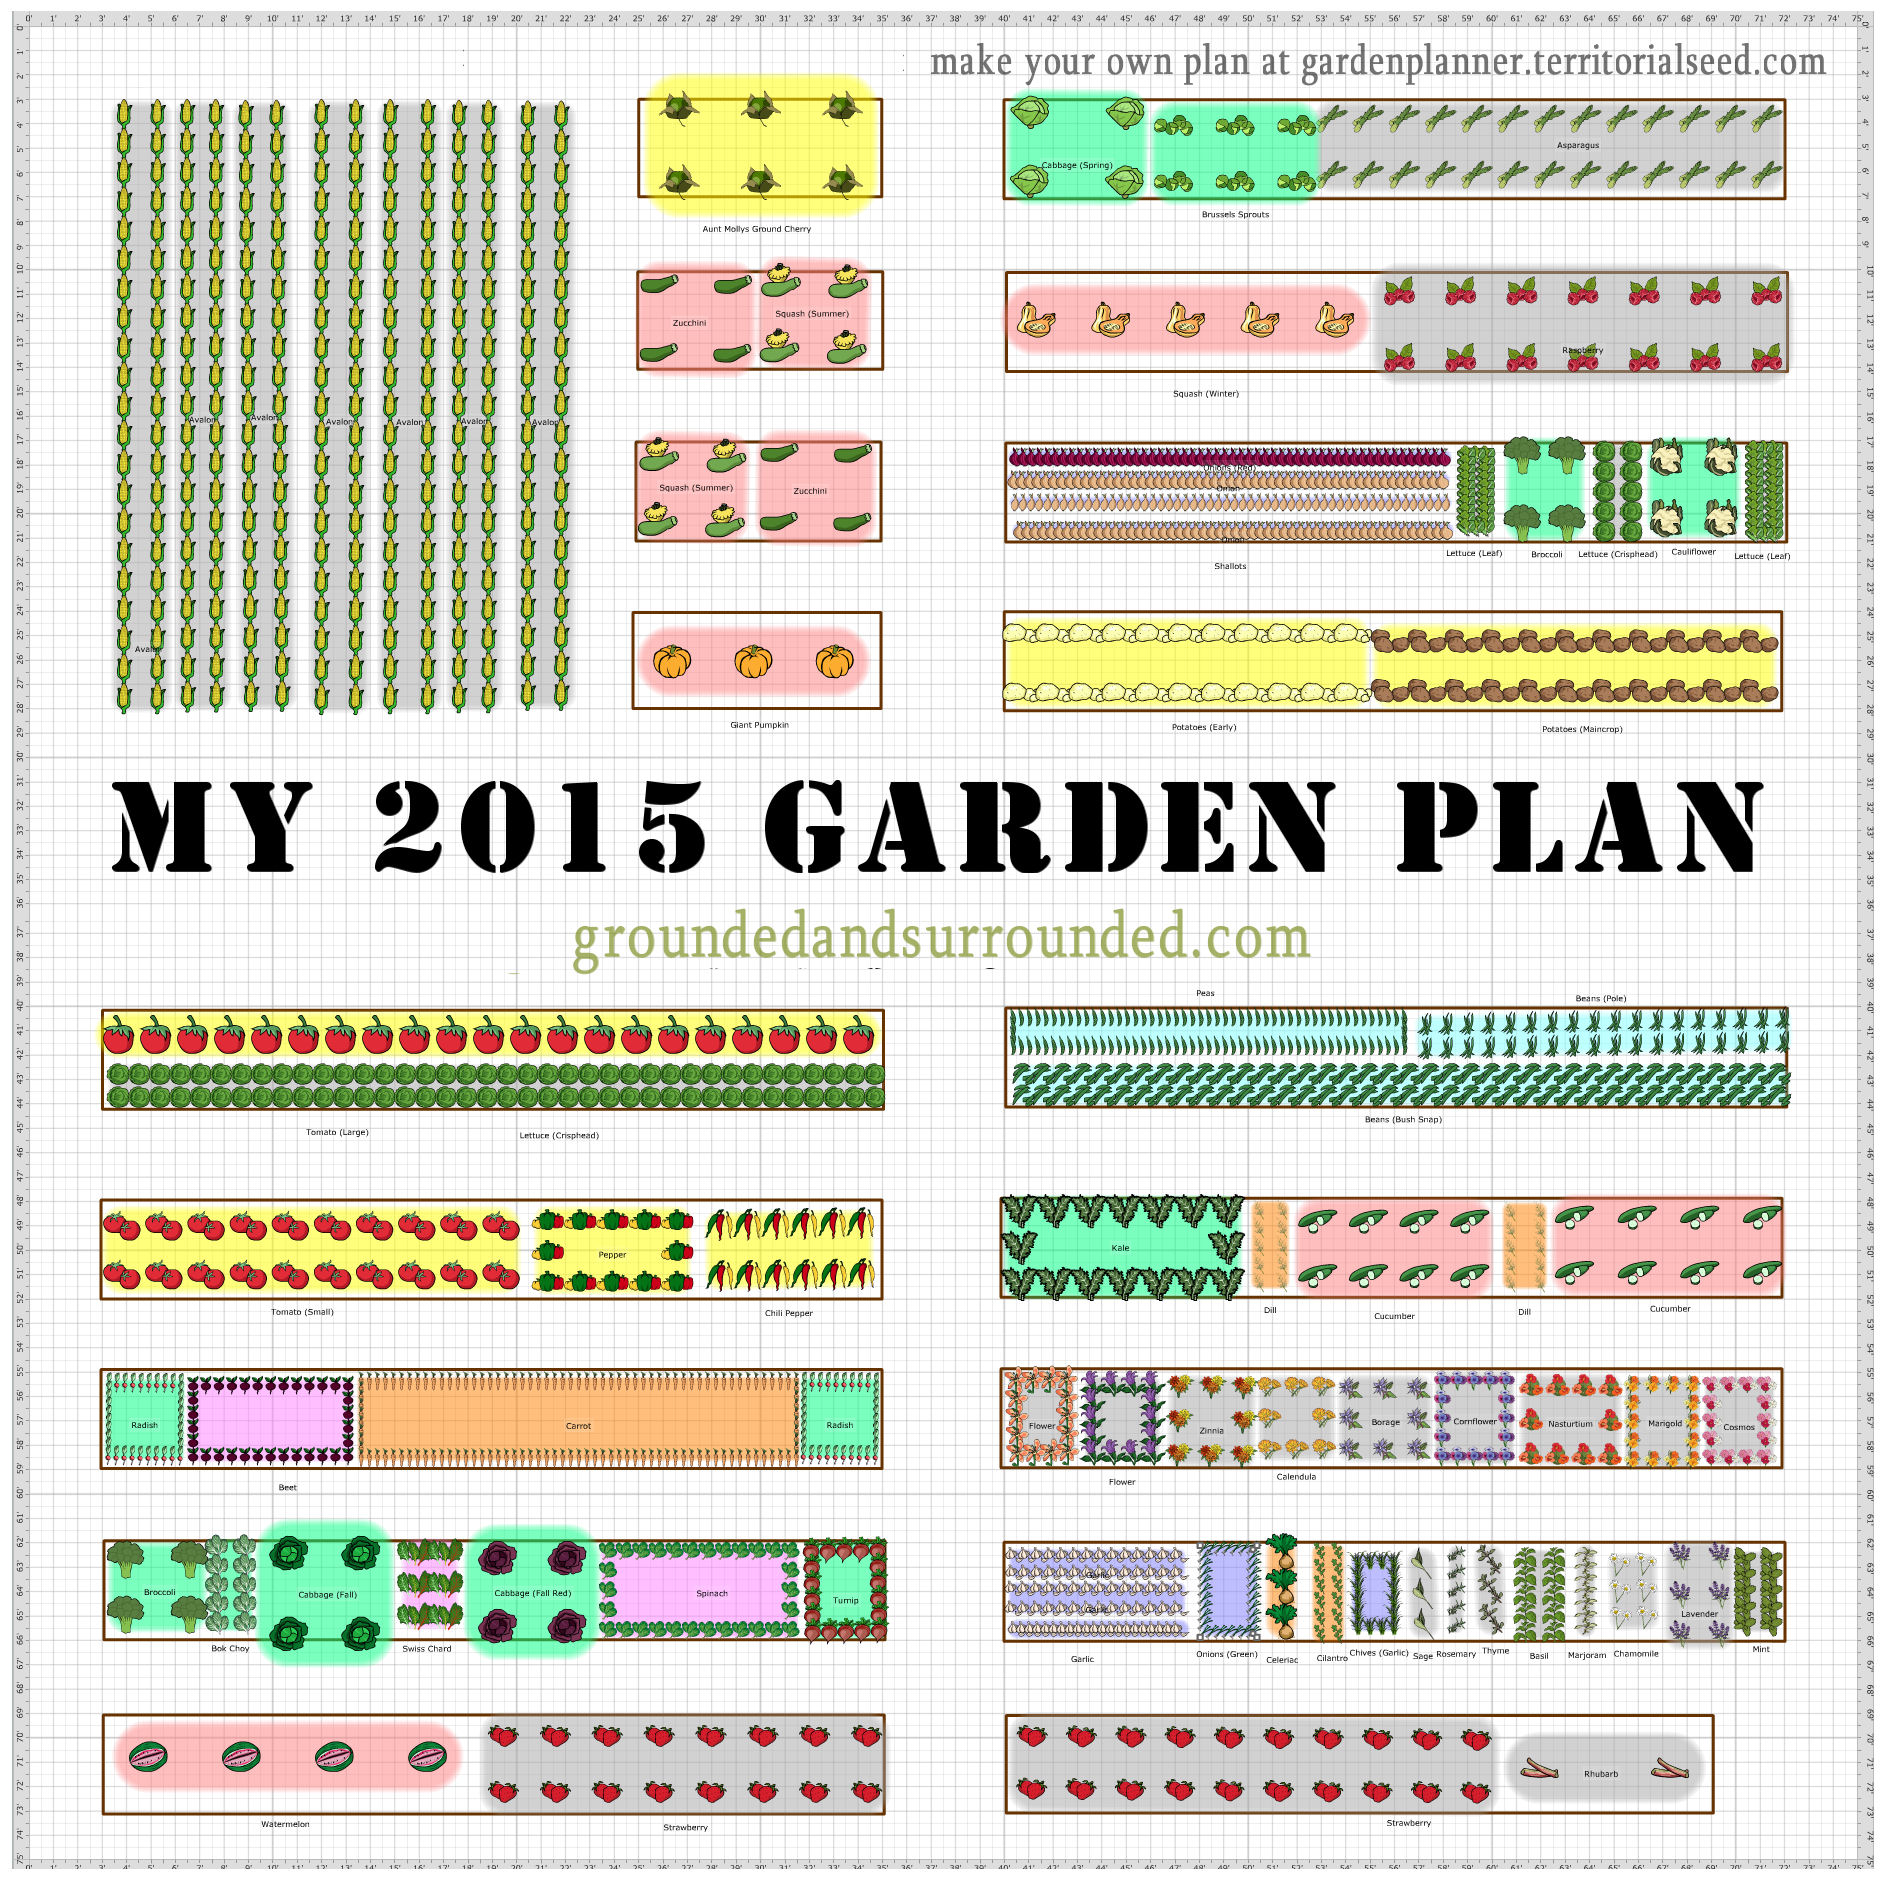 My 5 000 sq ft vegetable garden plan grounded surrounded for Vegetable garden planner